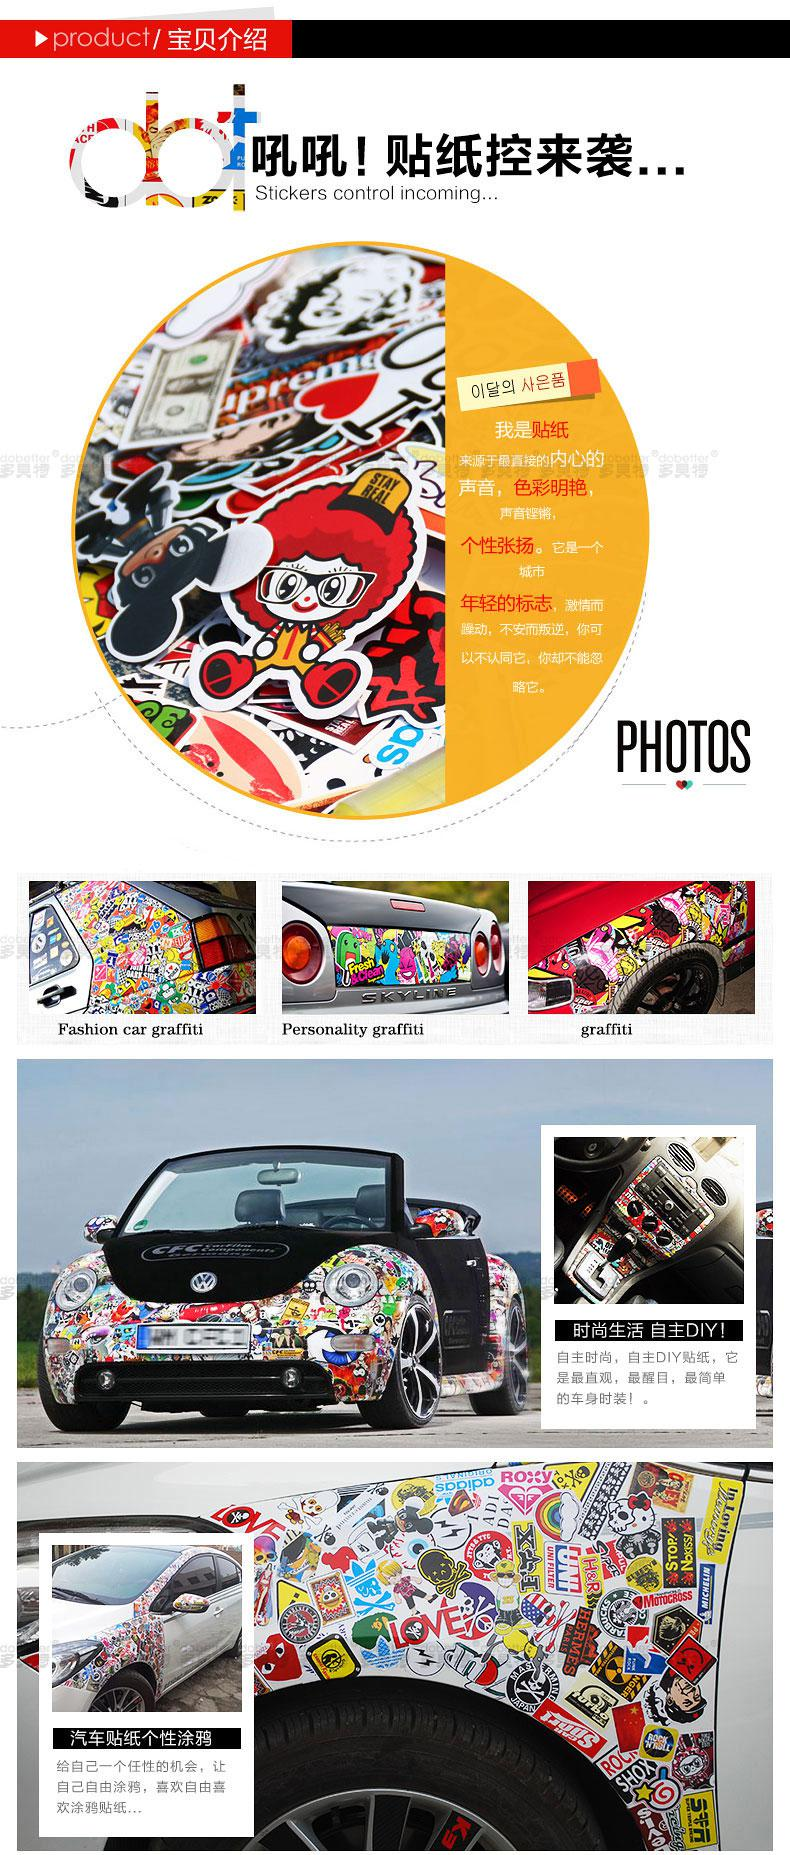 Car body sticker design for sale - Factory Direct Sale Welcome To Wholesale The Product All On The Sheet A4 3m Material Is Best The Price Must Be The Lowest Price